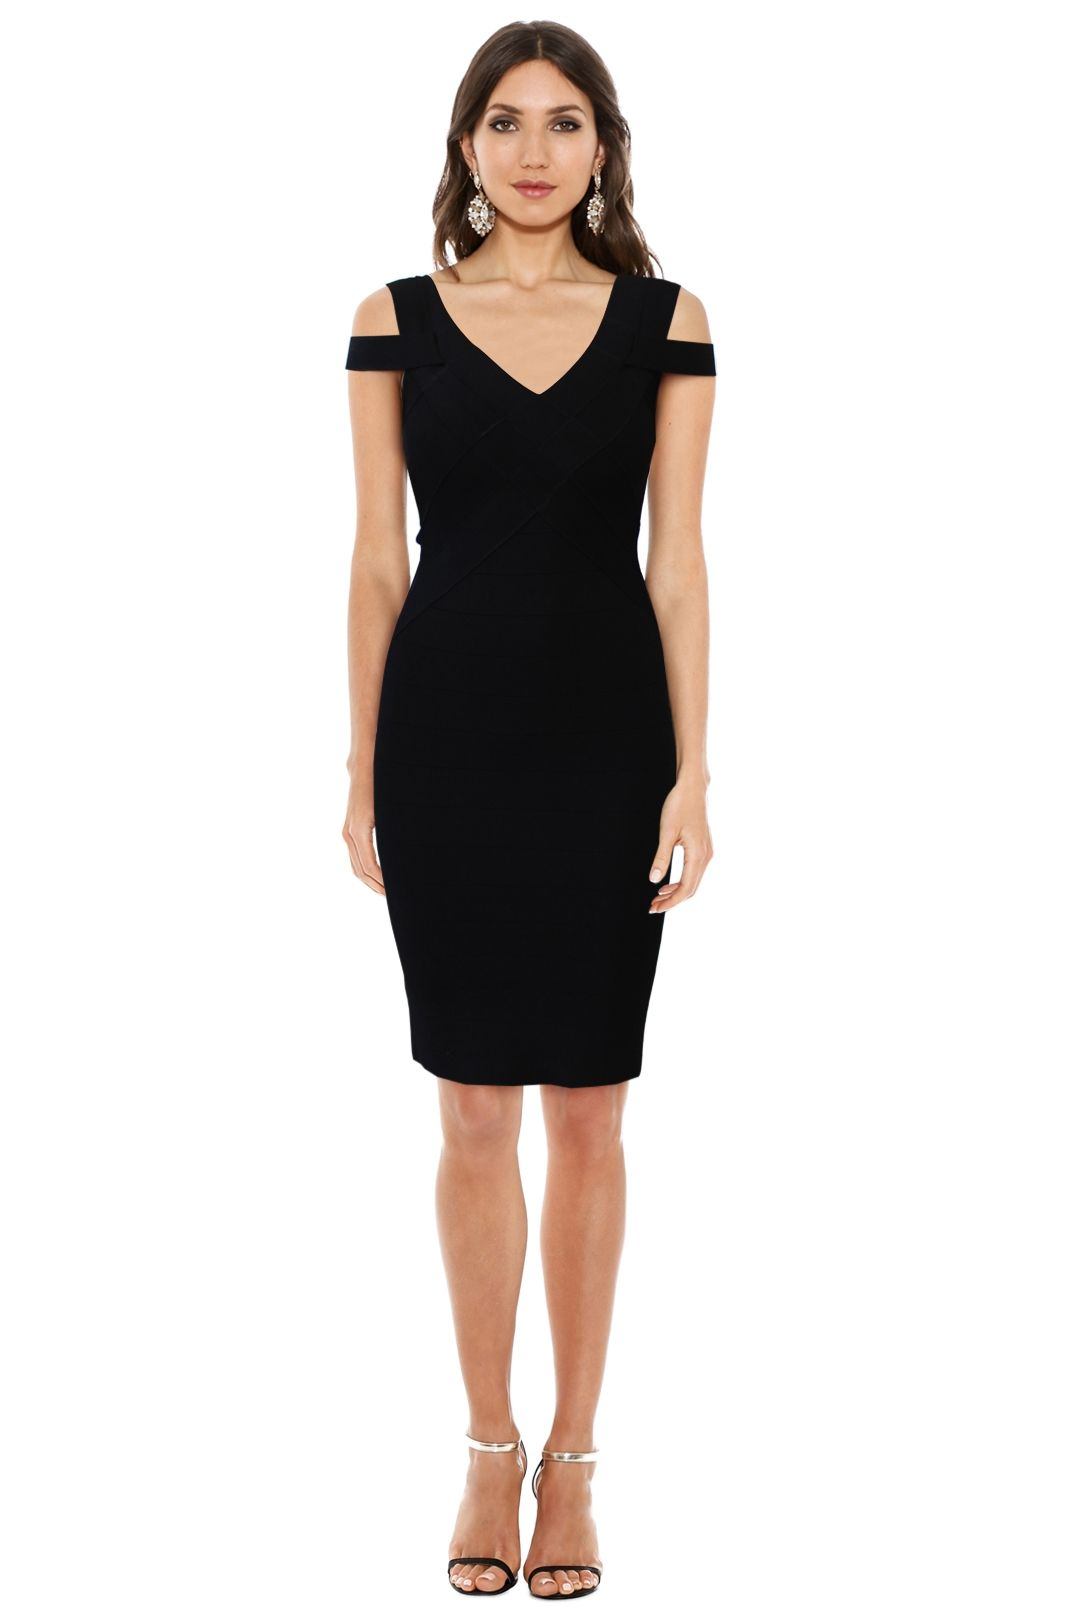 Karen Millen - Black Knit Dress - Black - Front